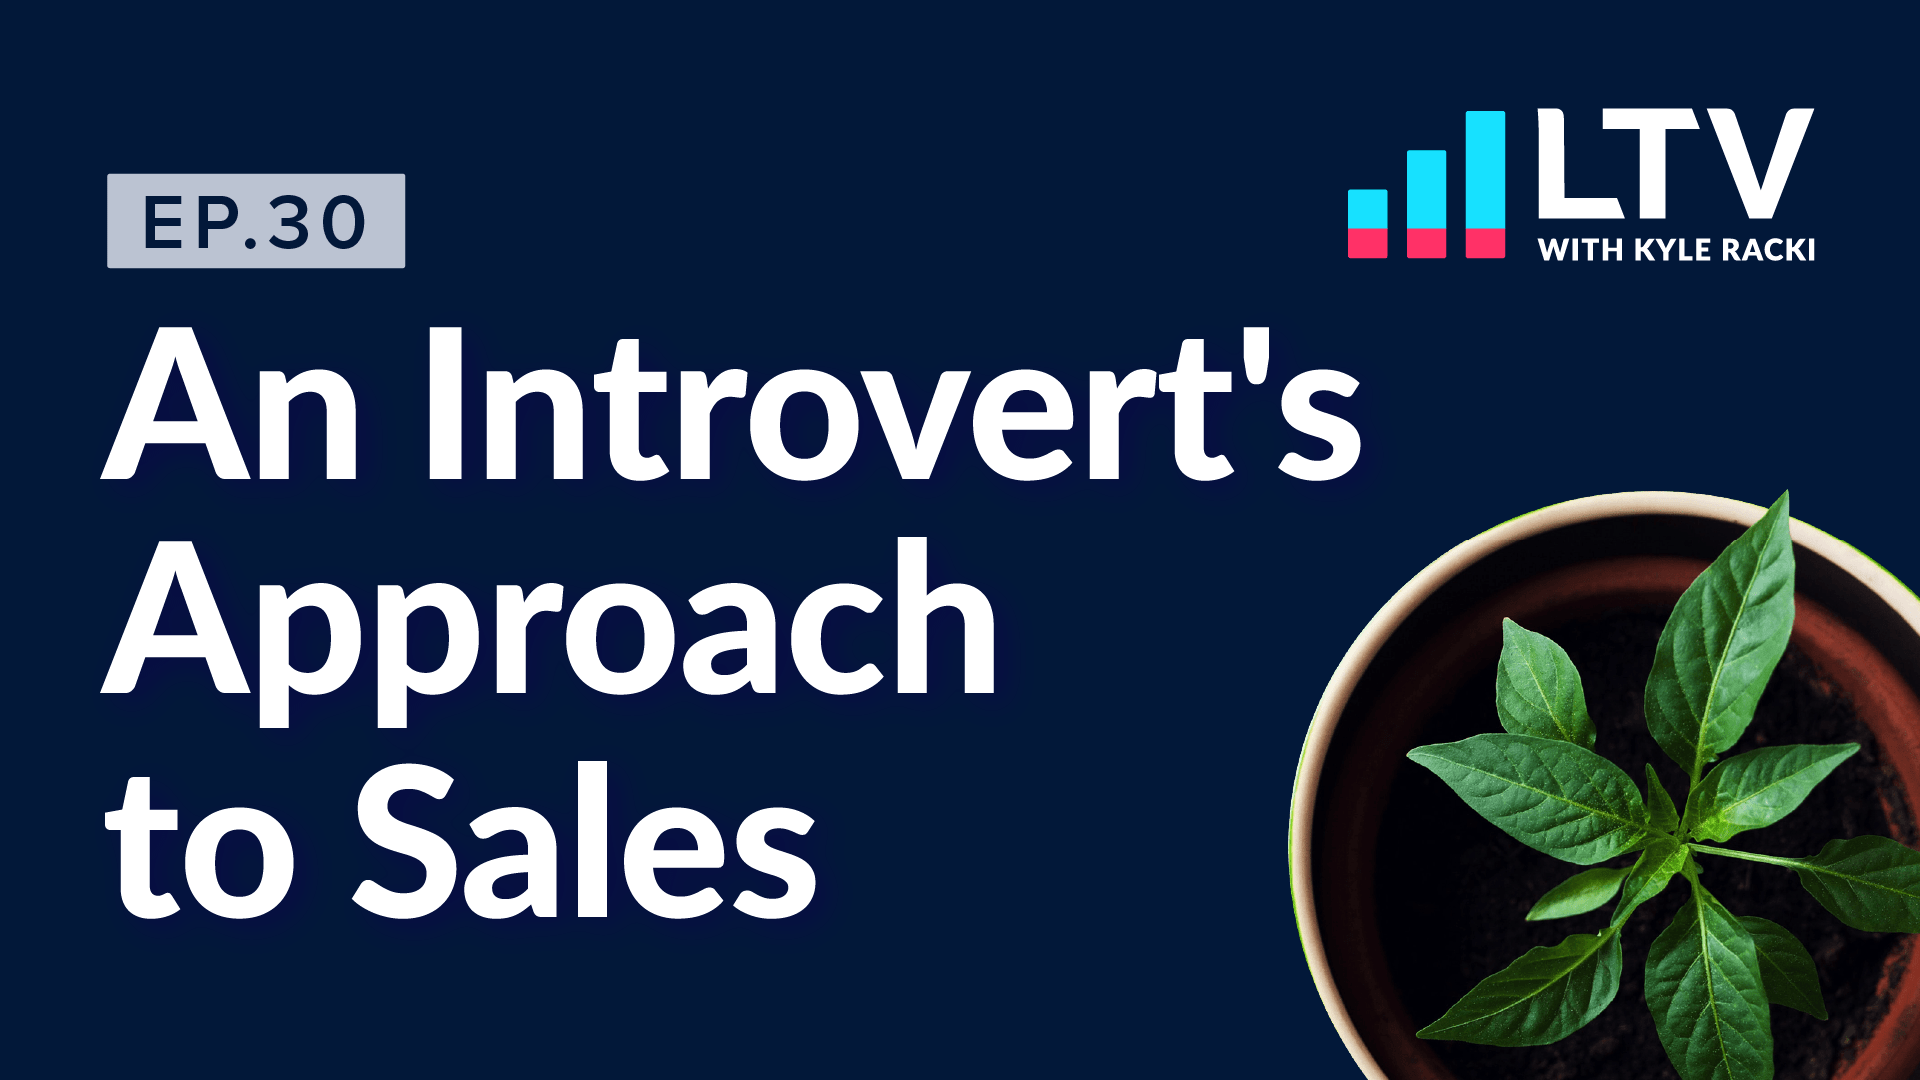 LTV Podcast Episode 30: An Introvert's Approach to Sales